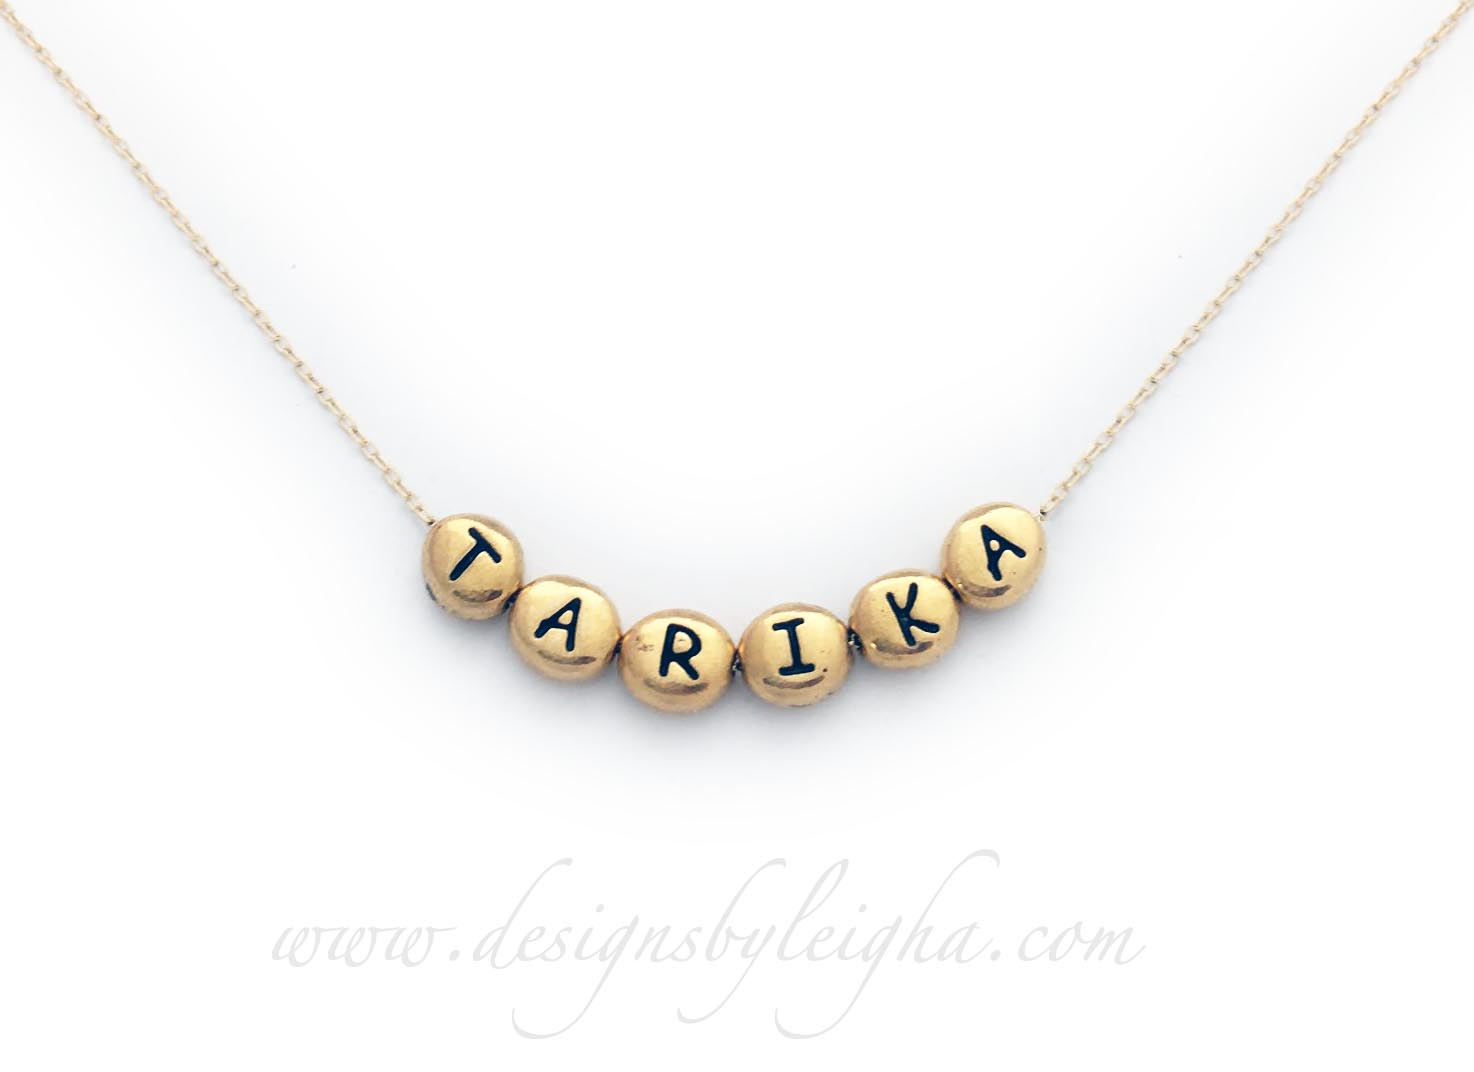 Tarika Name Necklace with Gold Block Letters